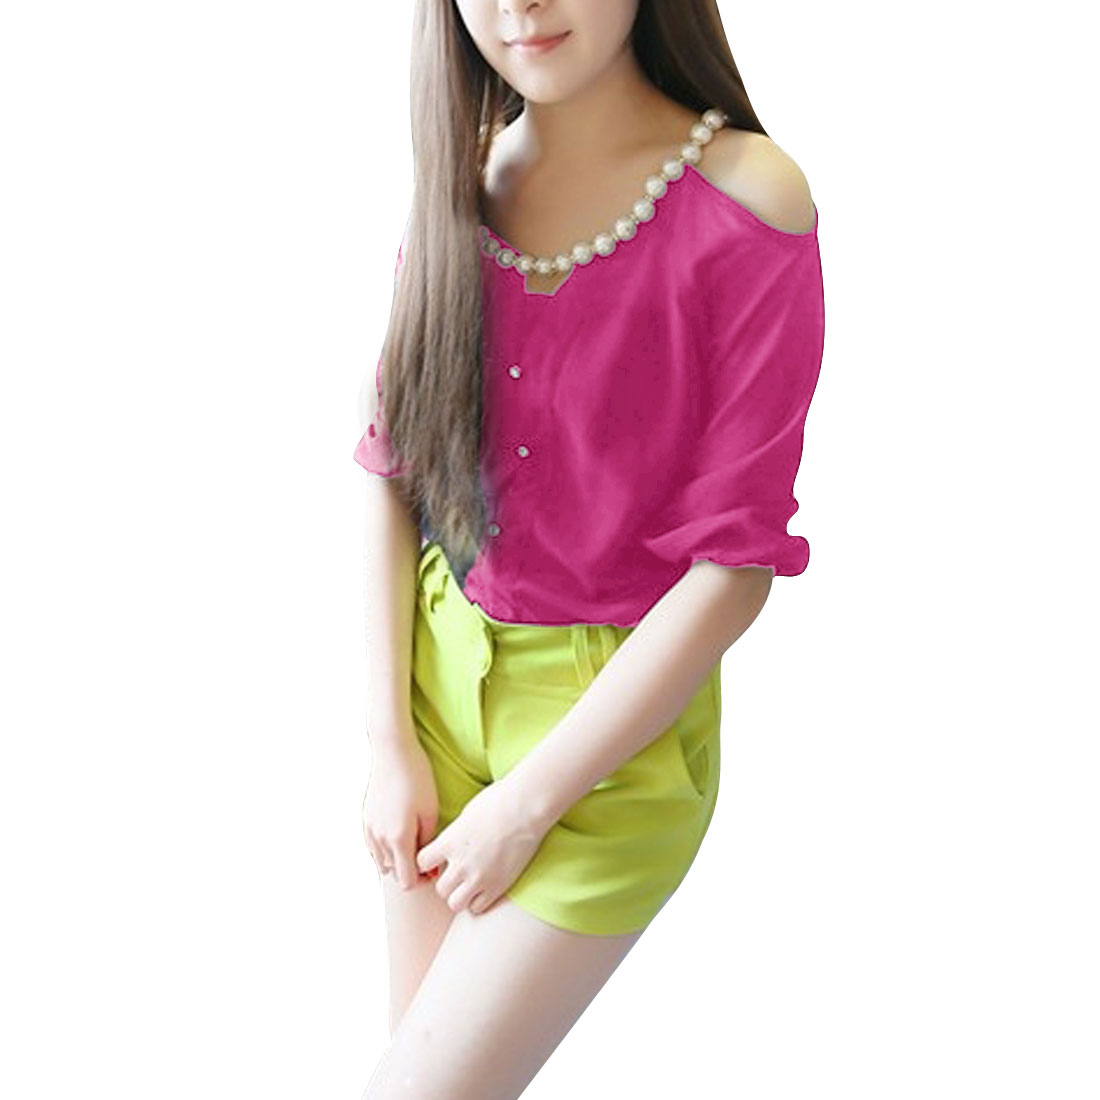 Woman Chic Plastic Pearl Chian Decor Half Sleeve Fuchsia Button Down Blouse